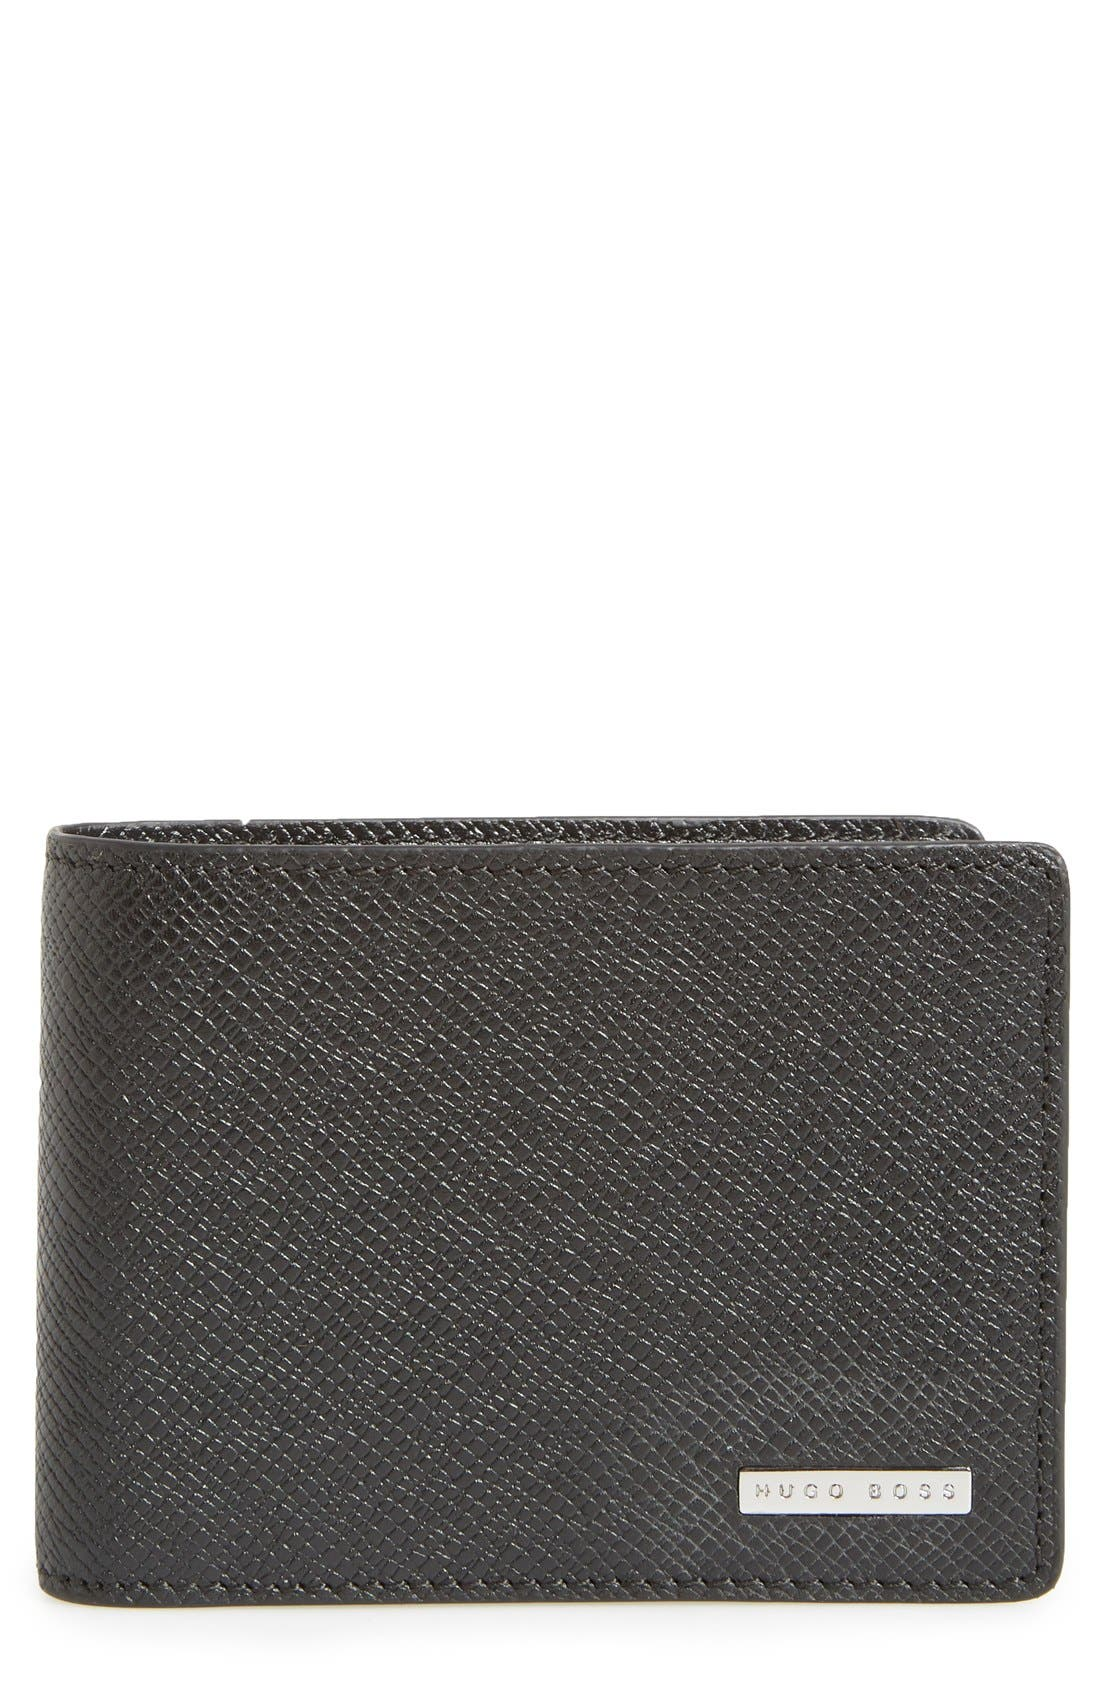 BOSS 'Signature' Bifold Calfskin Leather Wallet, Main, color, BLACK